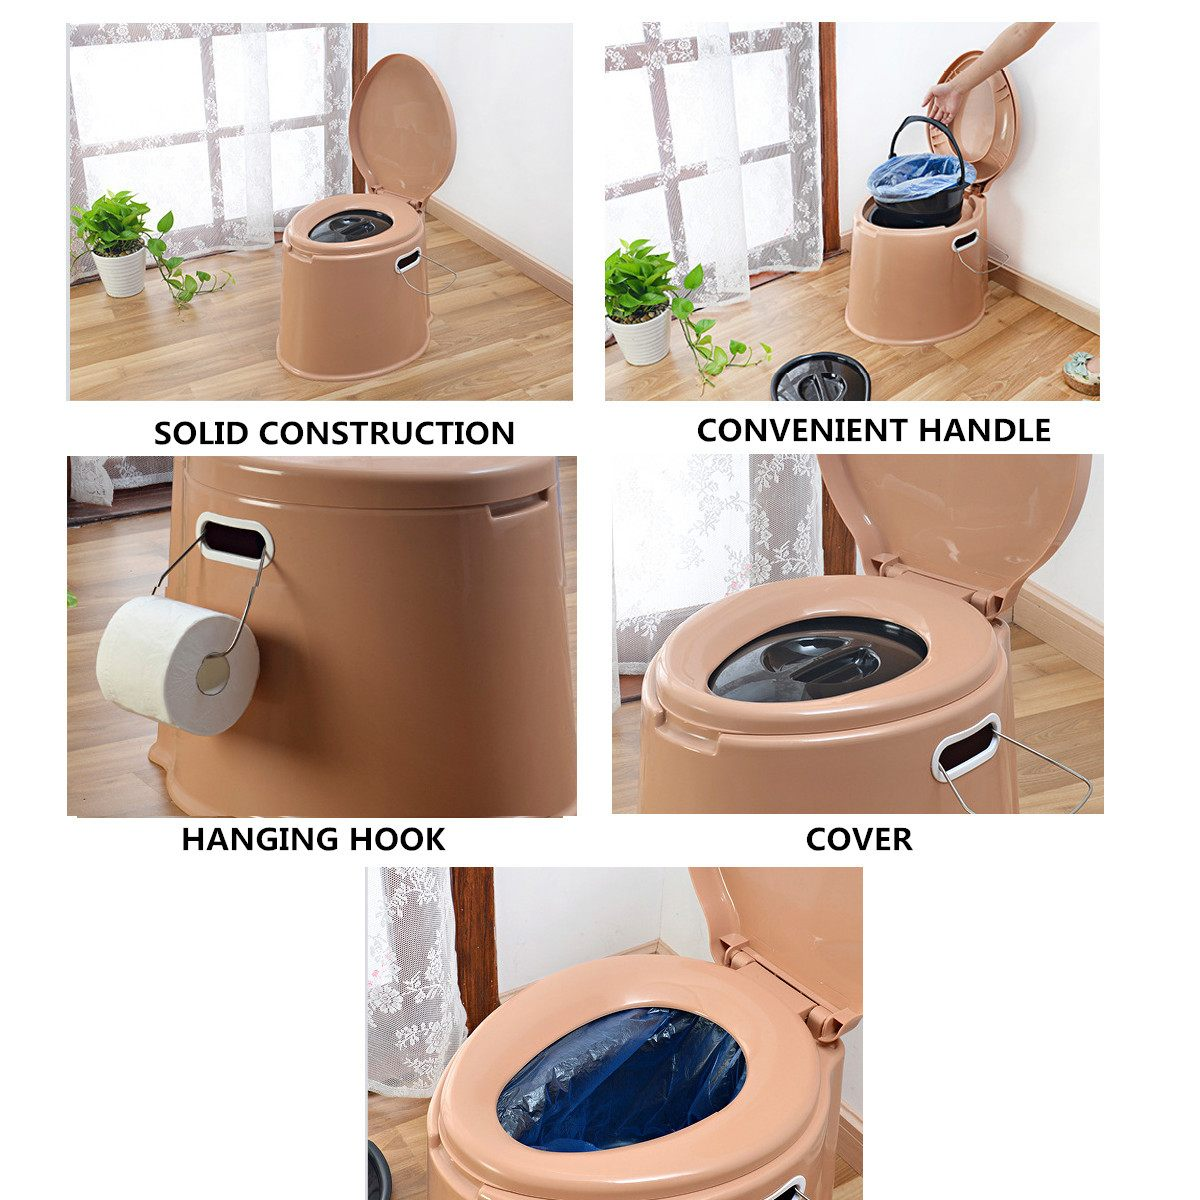 Portable Toilet Potty Commode Flush for the Elderly or Handicapped Outdoor Emergency